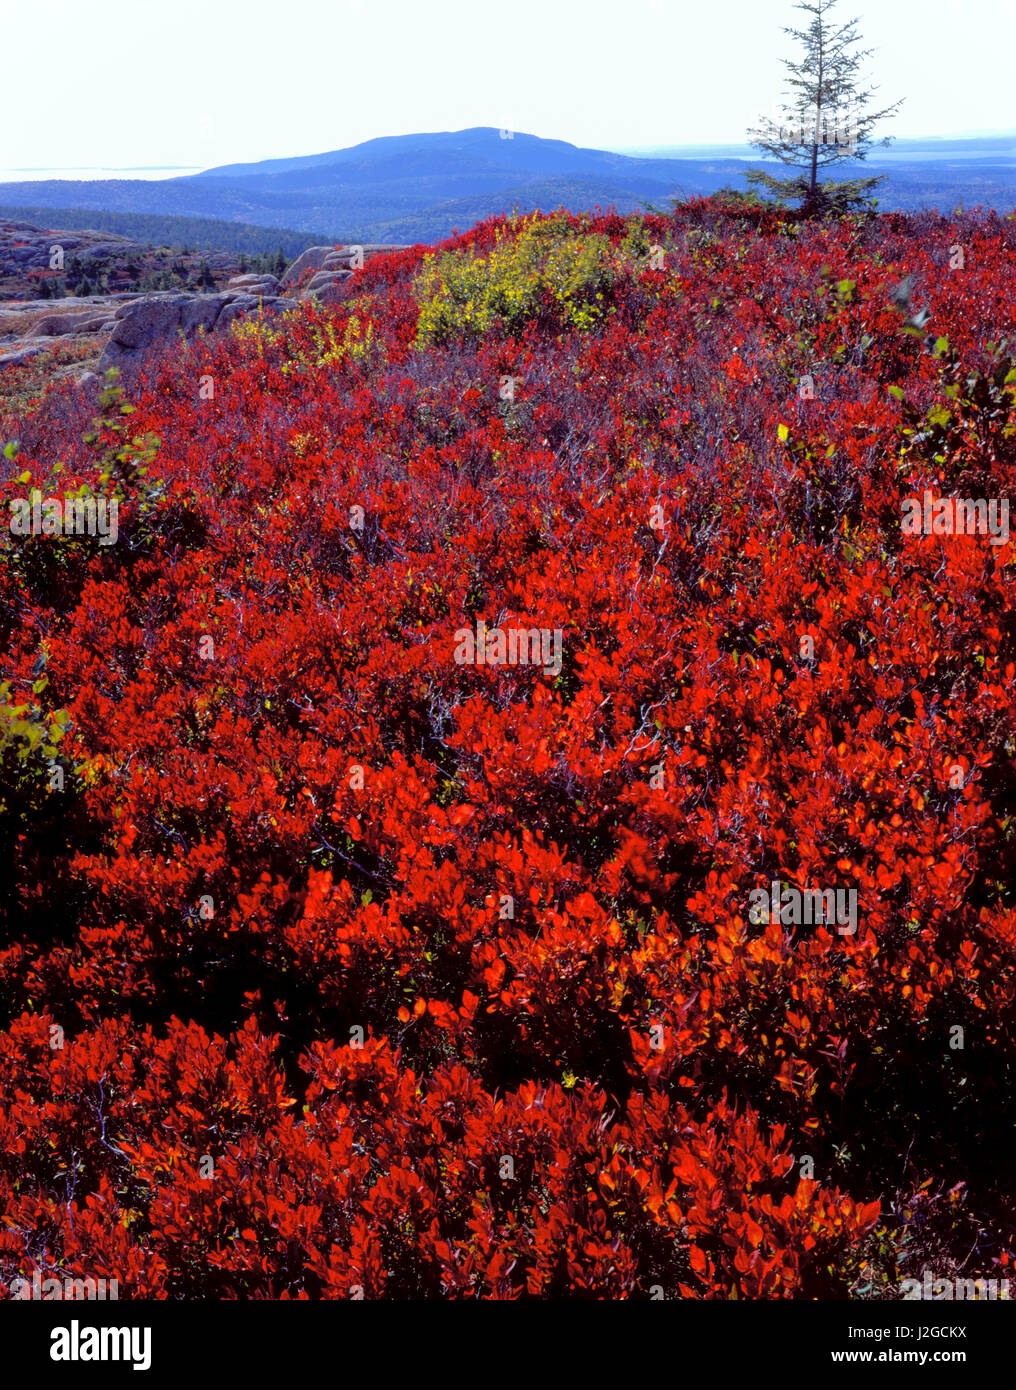 Acadia National Park, Maine. USA. Scarlet foliage of black huckleberry (Gaylussacia baccata) in autumn on Gilmore - Stock Image